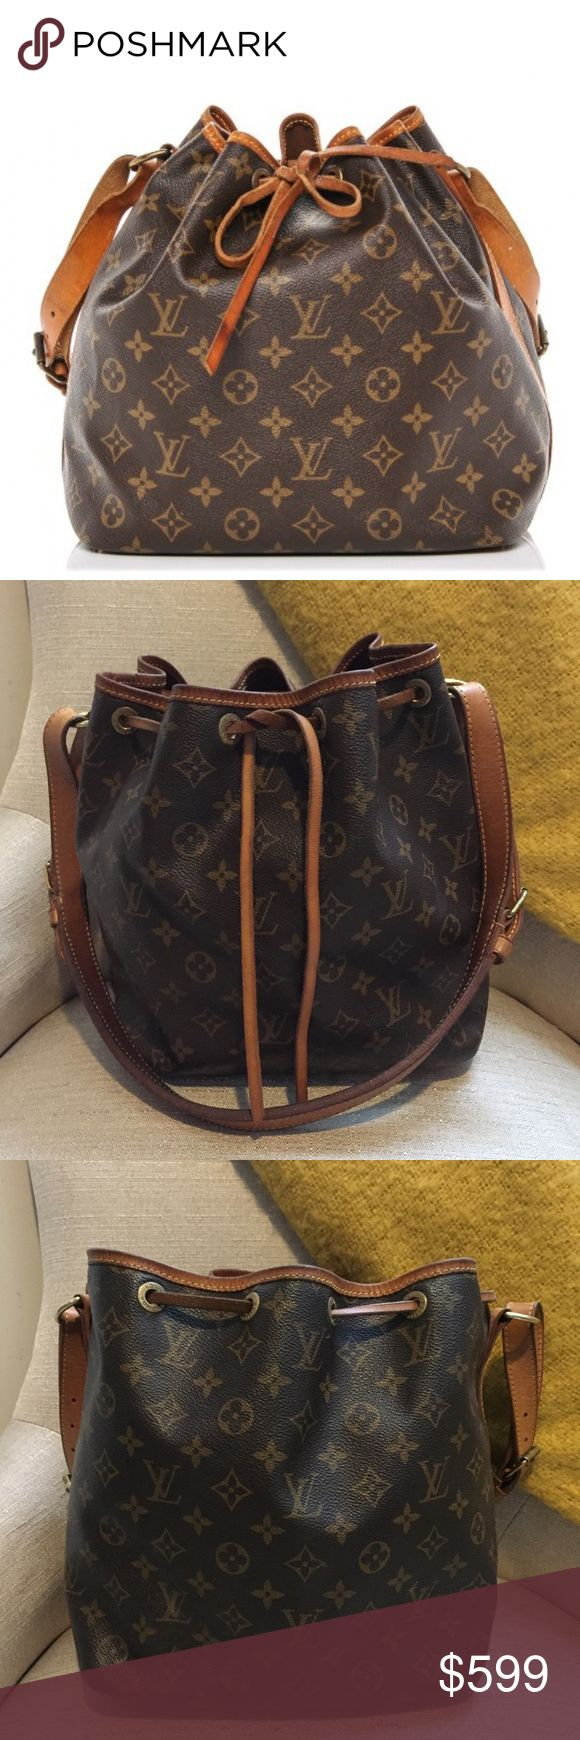 """•Louis Vuitton• Petite Noe Canvas Monogram Bag Louis Vuitton Petite Noe Canvas Monogram Bag. Authentic. Made in the USA. In Great Used Condition. The Leather is Super Buttery Honey Patina. Canvas is in overall great condition, Inside is clean, there is some scratching, minor cracking, water marks and signs of wear on the bottom, handle and leather side panels. Make on one corner. Please check photos. No Dust Bag or Box. Approximately 9.5"""" W x 10.2"""" H x 7"""" D ✖️NO TRADES✖️ Louis Vuitton Bags…"""